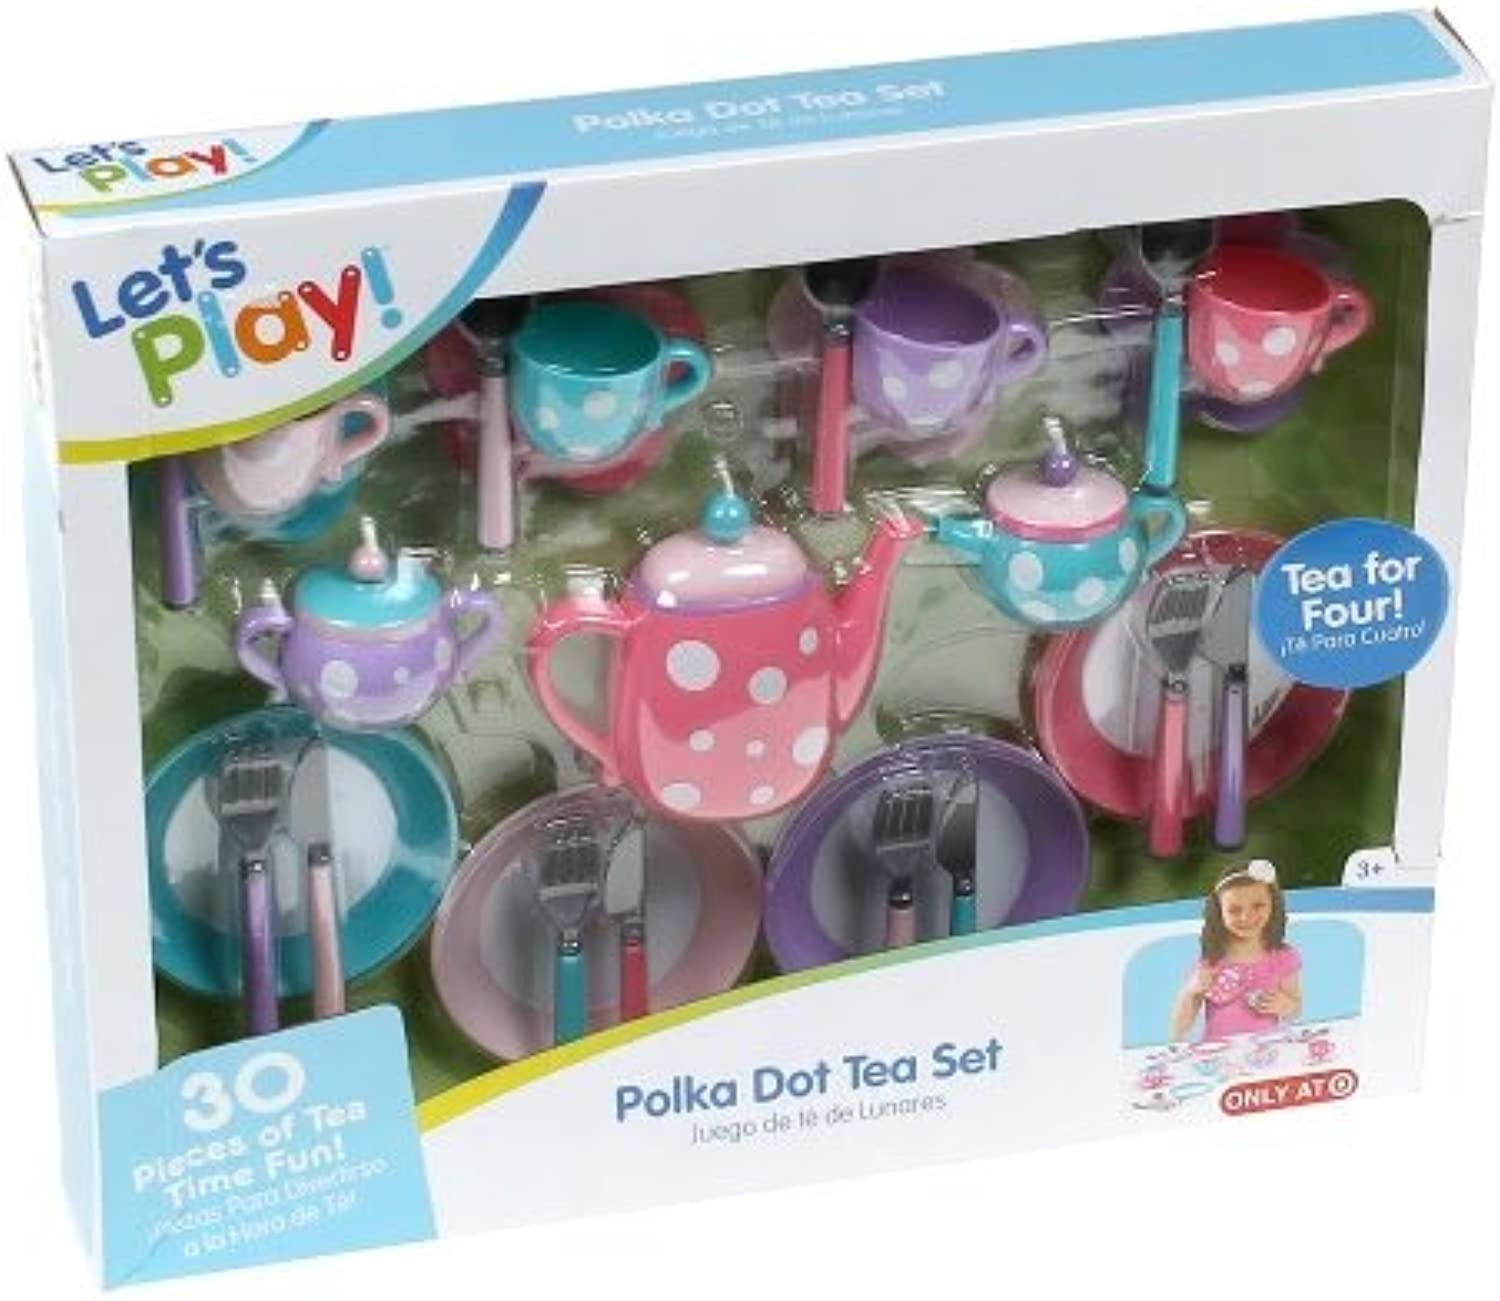 Polka Dot Tea Set 30 Piece by Lets Play